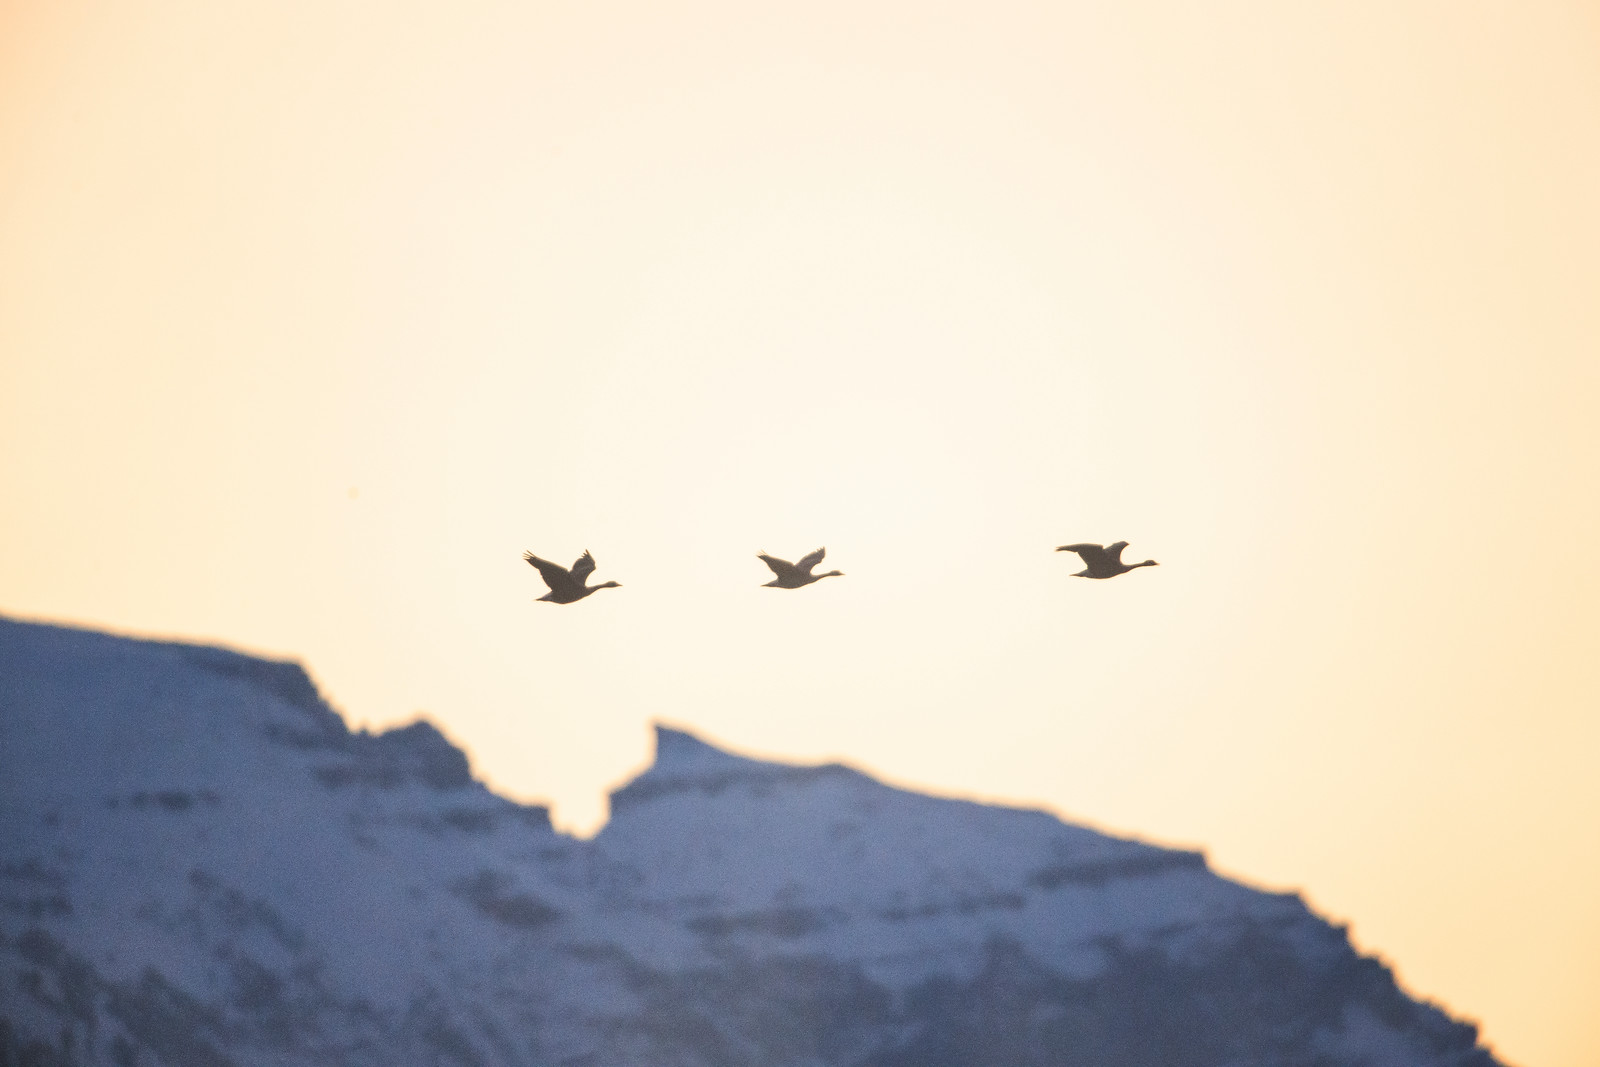 Canadian Geese Fly Over the Sleeping Indian, Jackson Hole, Wyoming